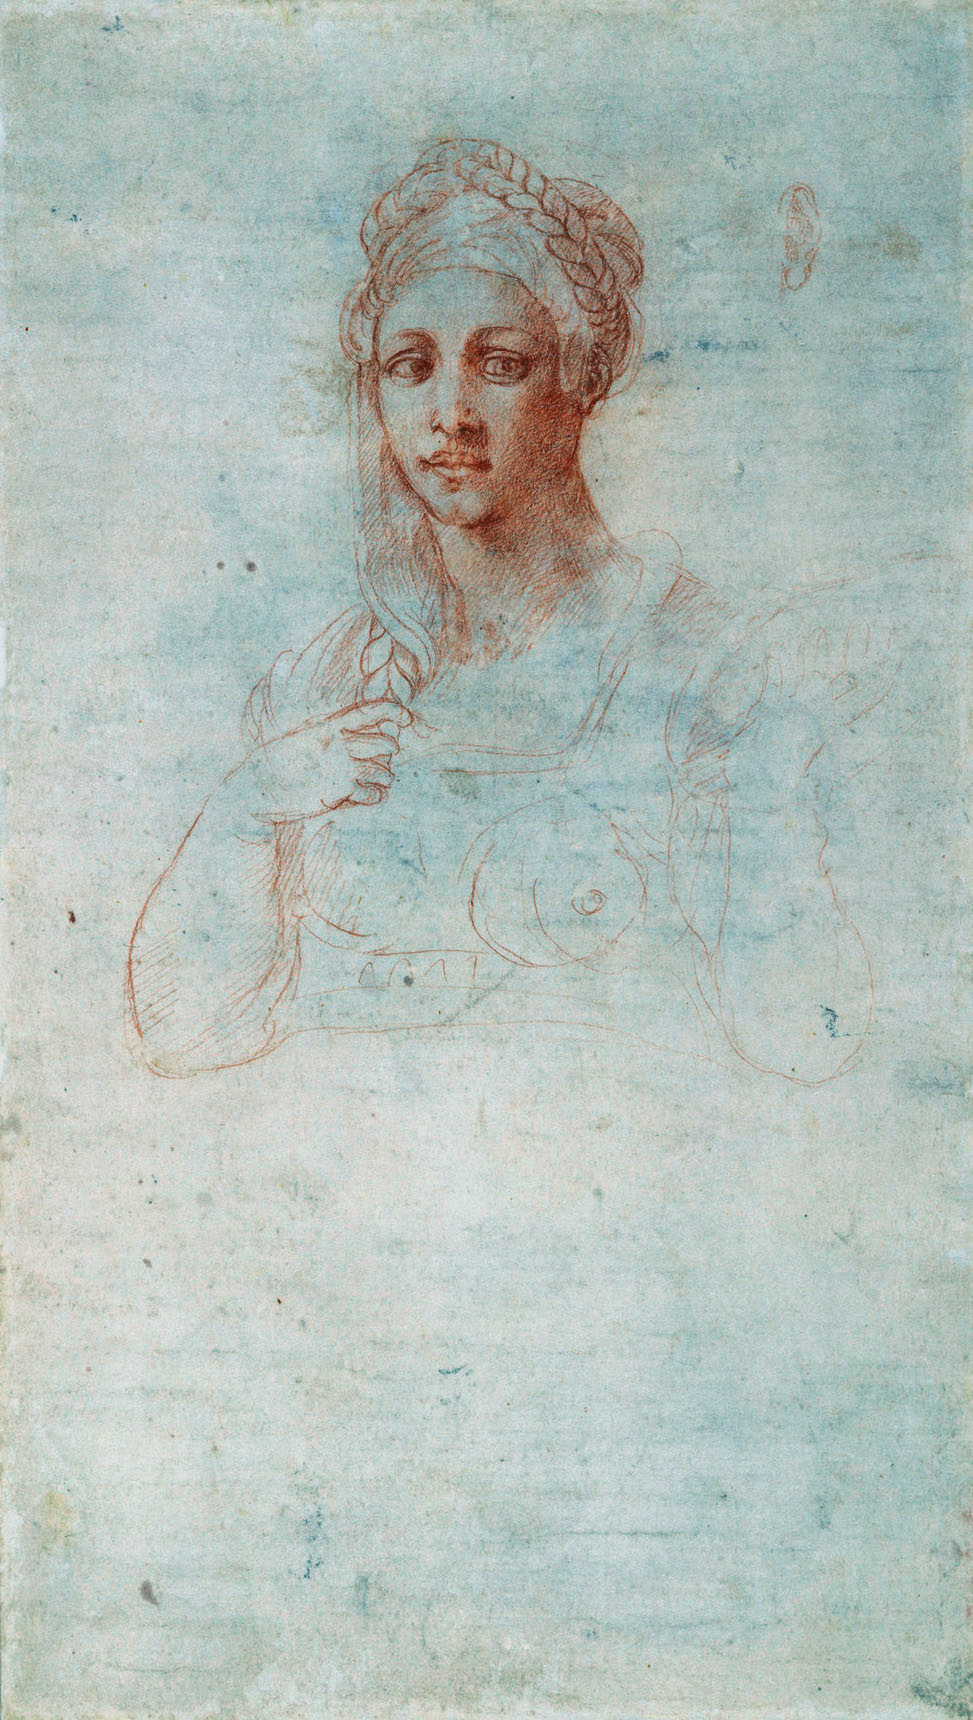 Michelangelo-Buonarroti--Drawing---Female-Face.jpg